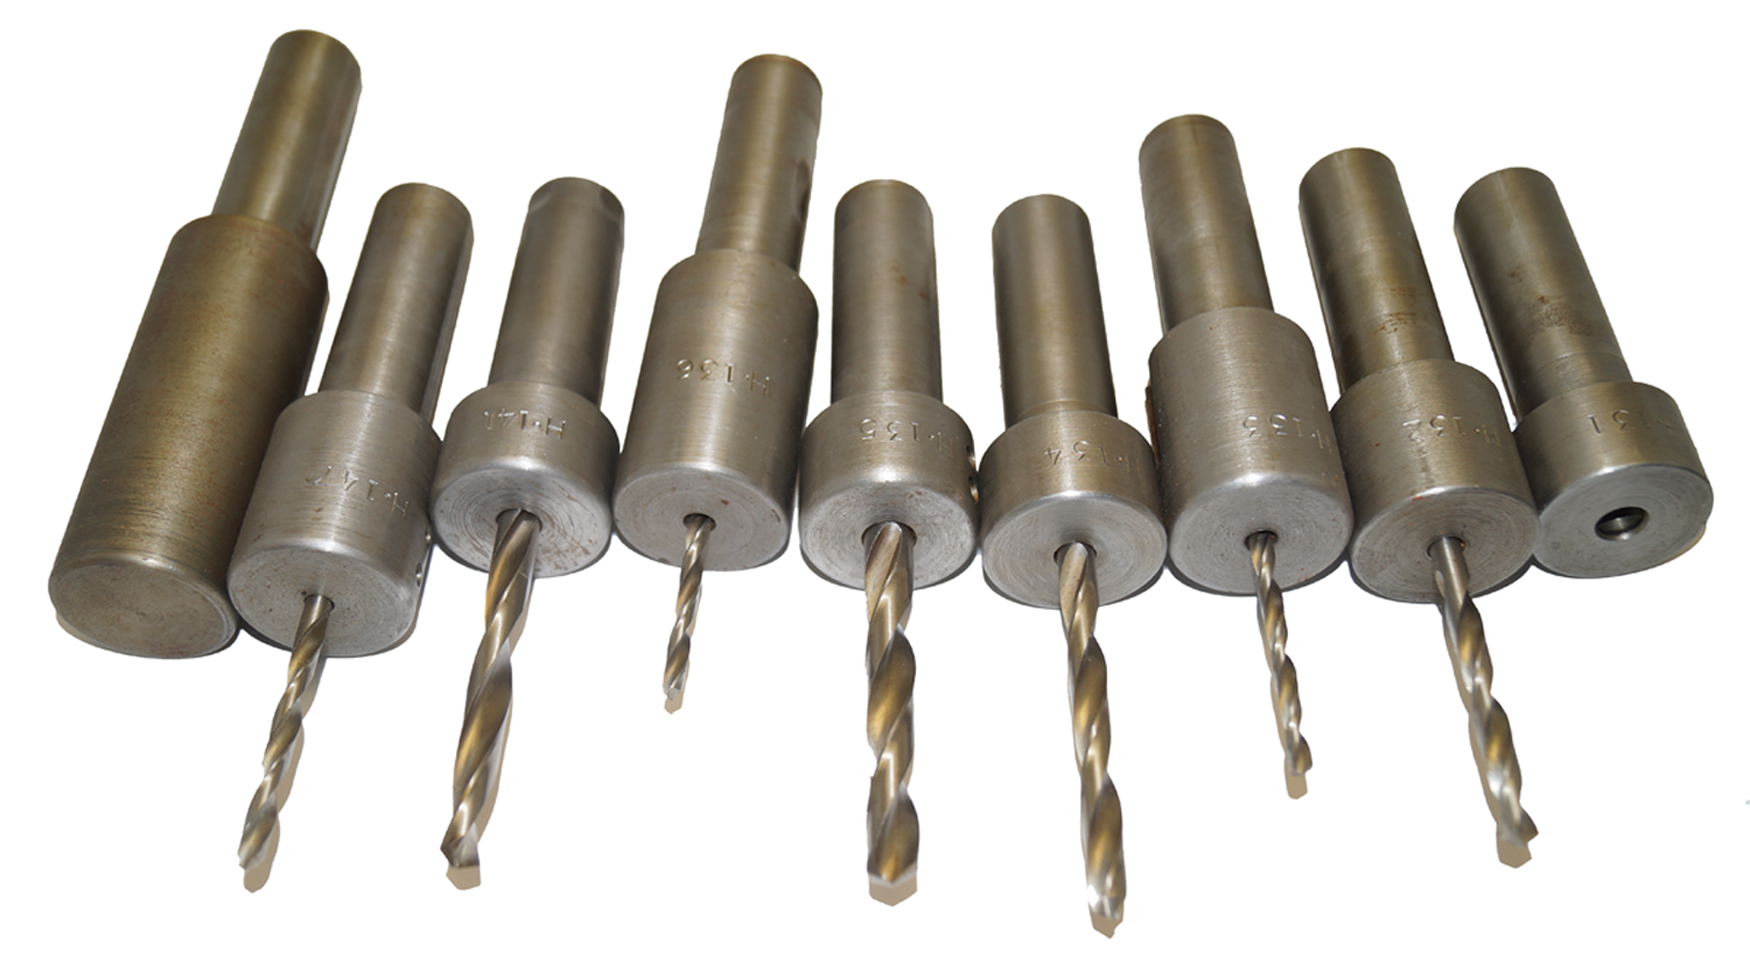 Lathe Drill Set Scientific Cutting Tools ID Drilling